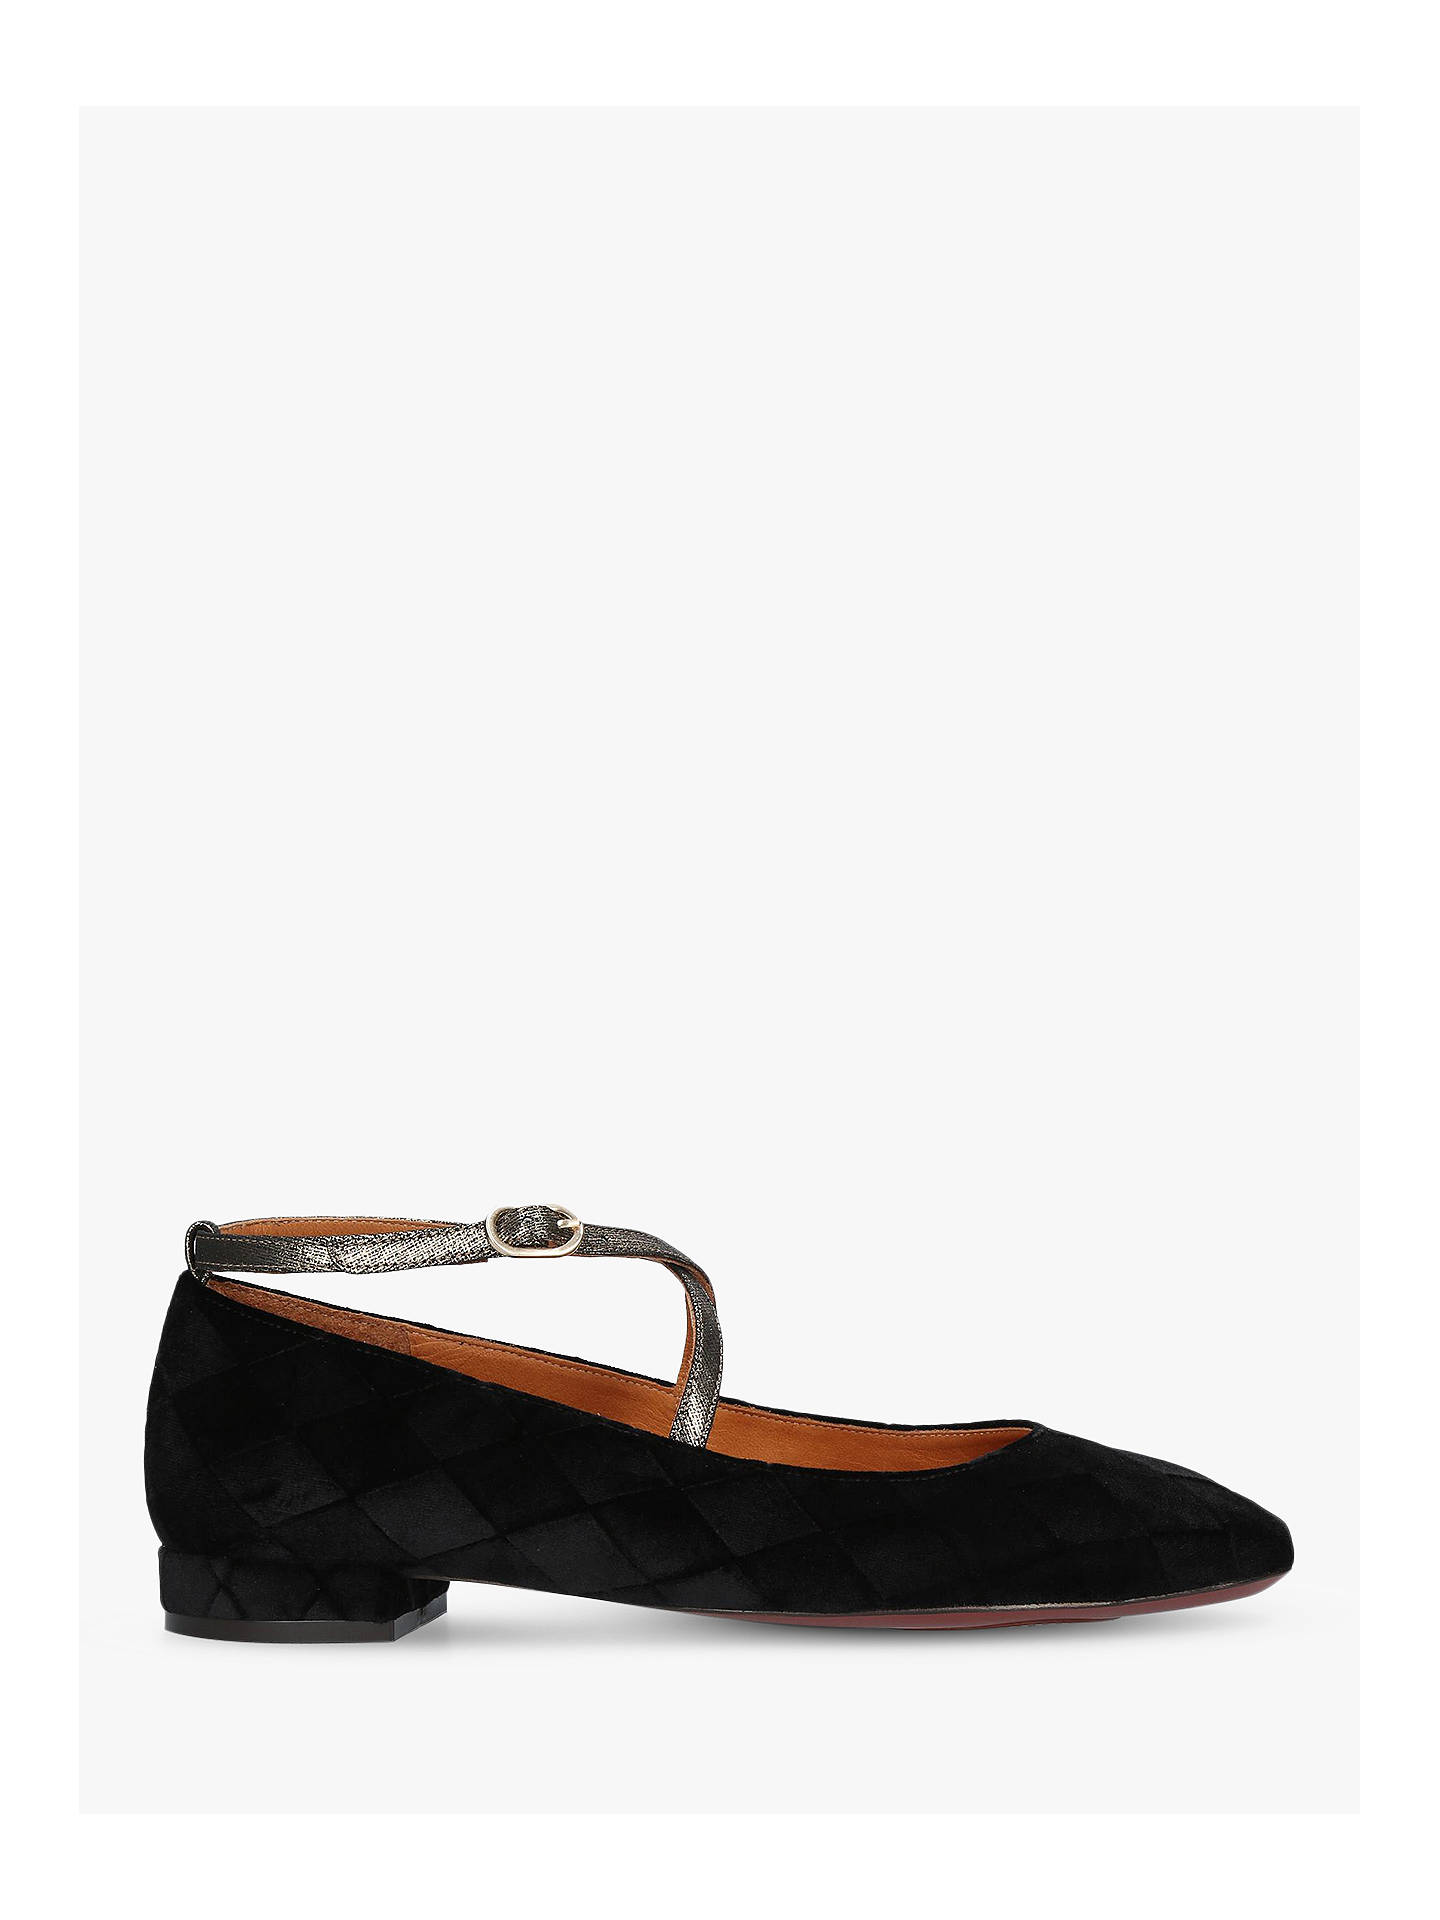 581ce8518742 Buy Chie Mihara Valet Ankle Strap Ballet Pumps